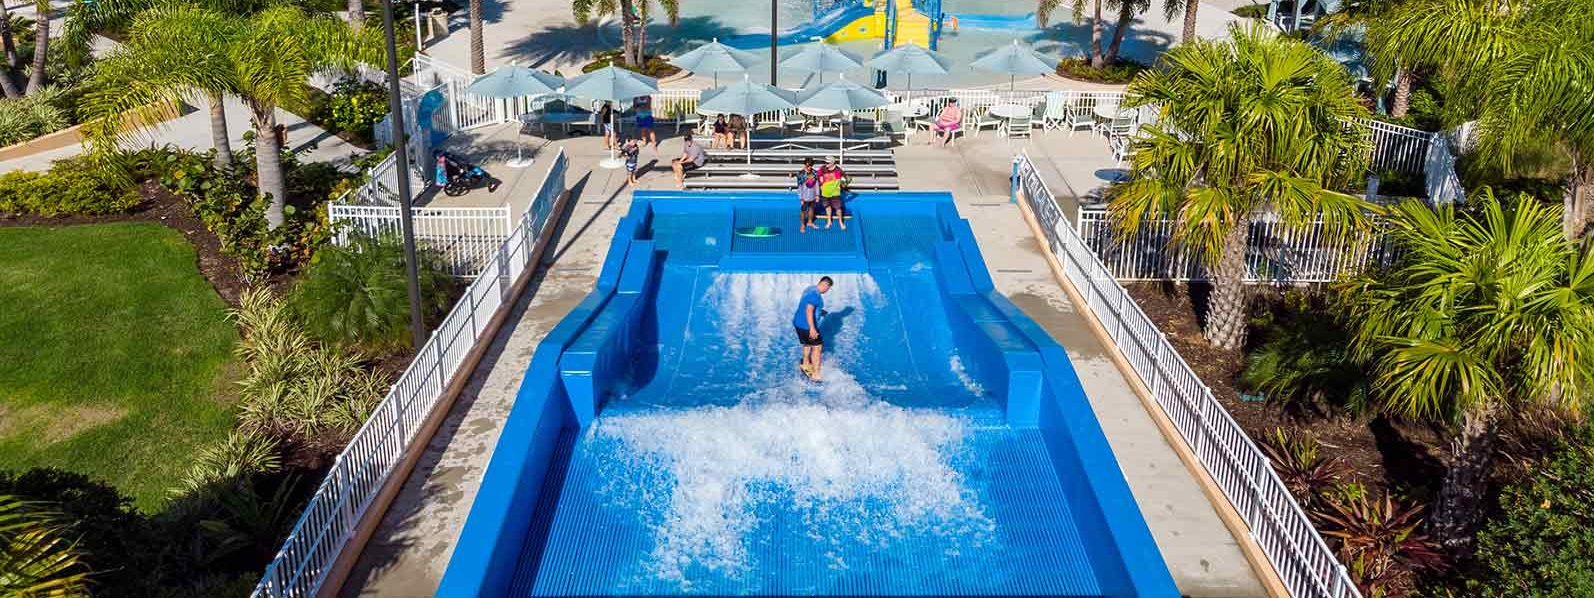 The Top Rated Water Parks In Orlando 2019